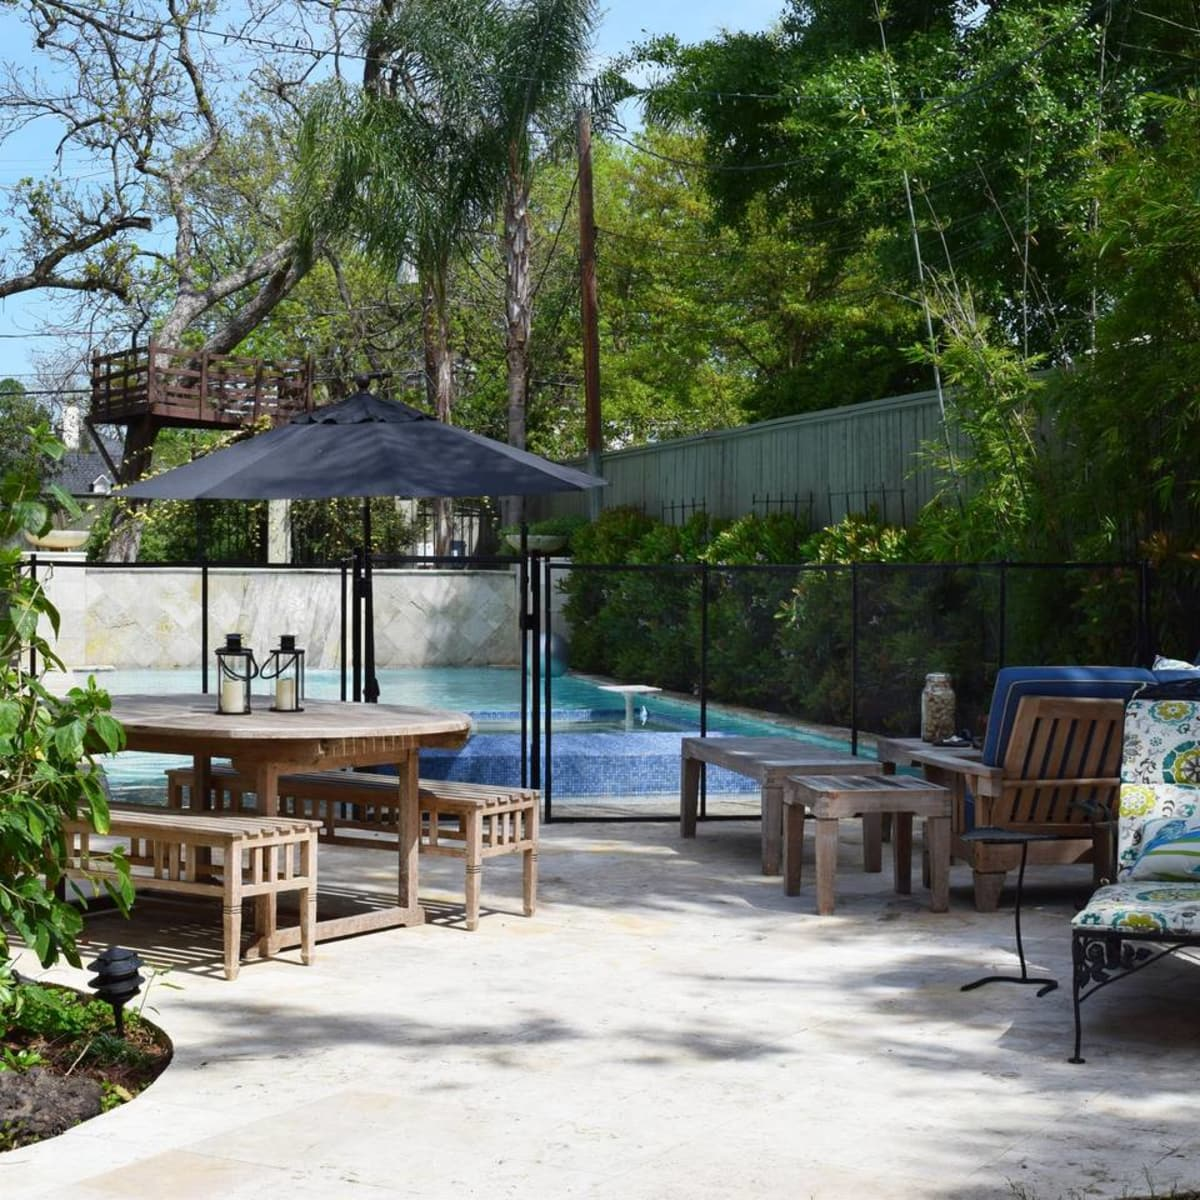 These Popular Airbnb Rentals Are The Most Coveted In Texas